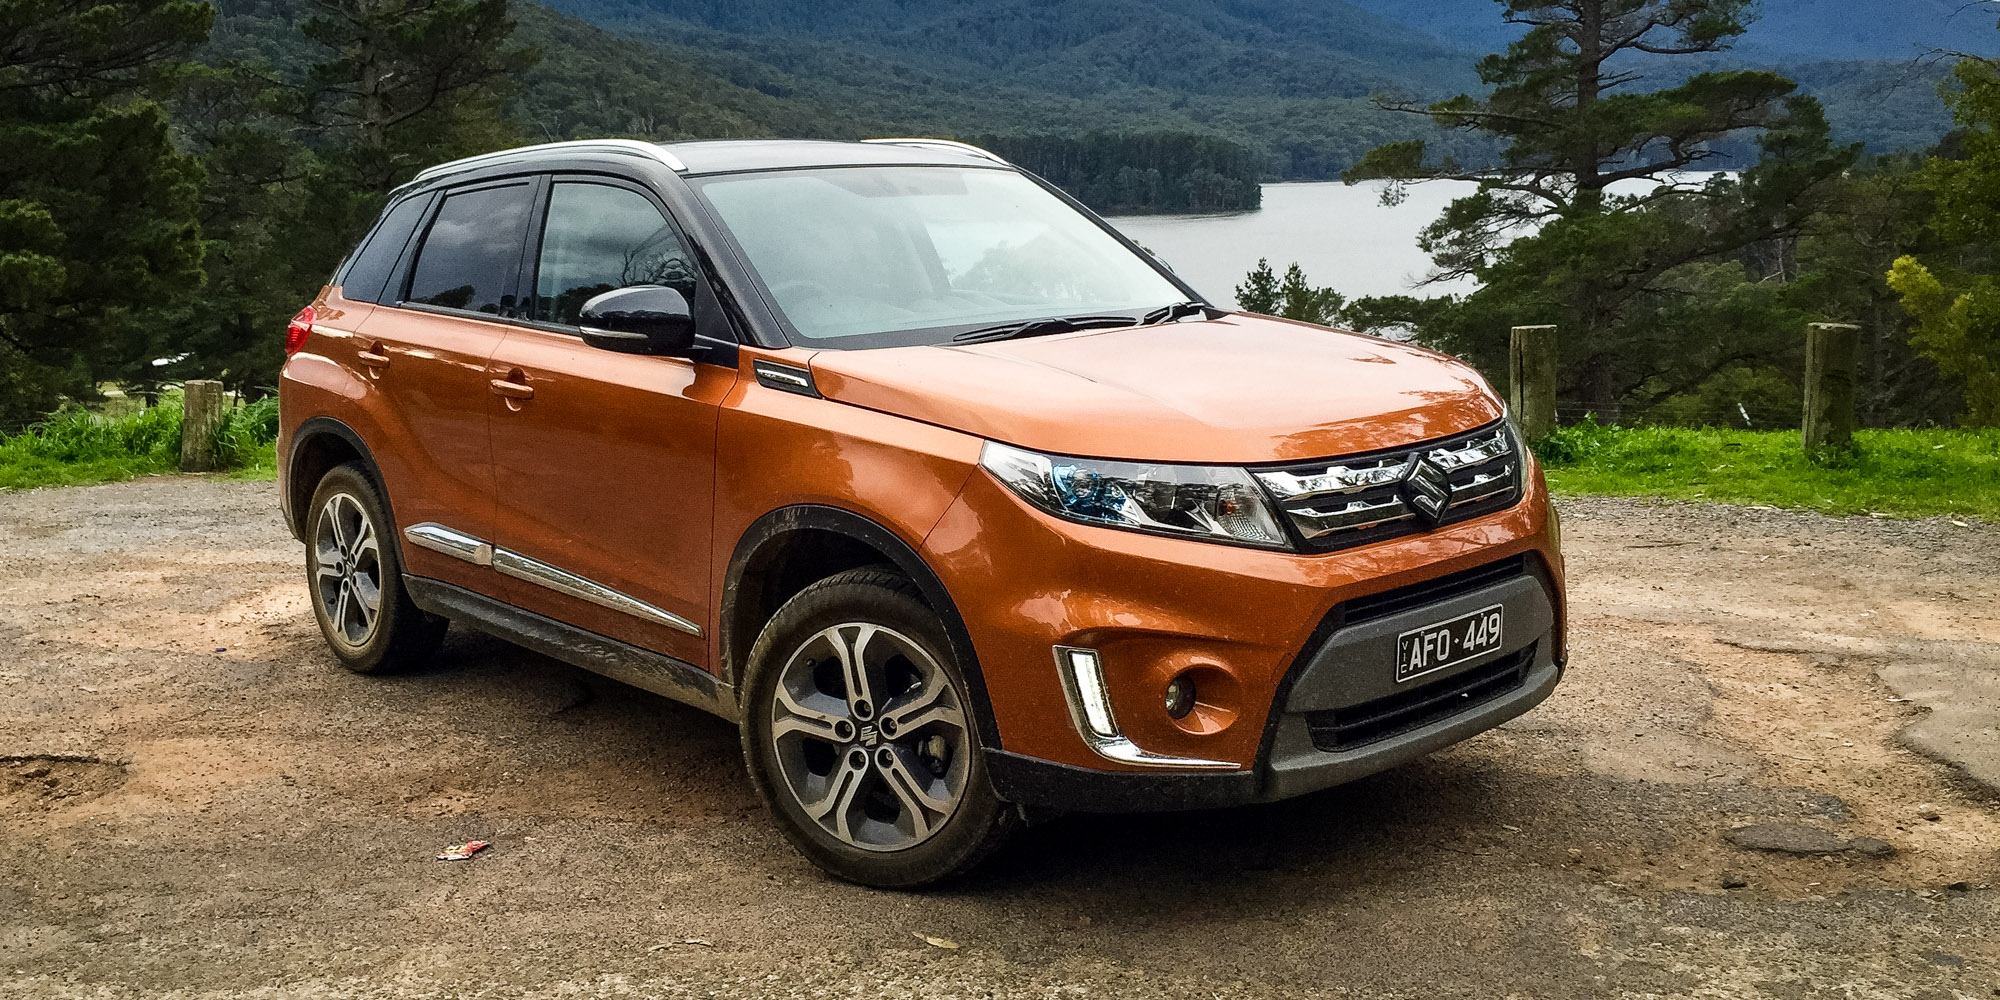 The Arrival of New Suzuki Vitara - What We Need to Know